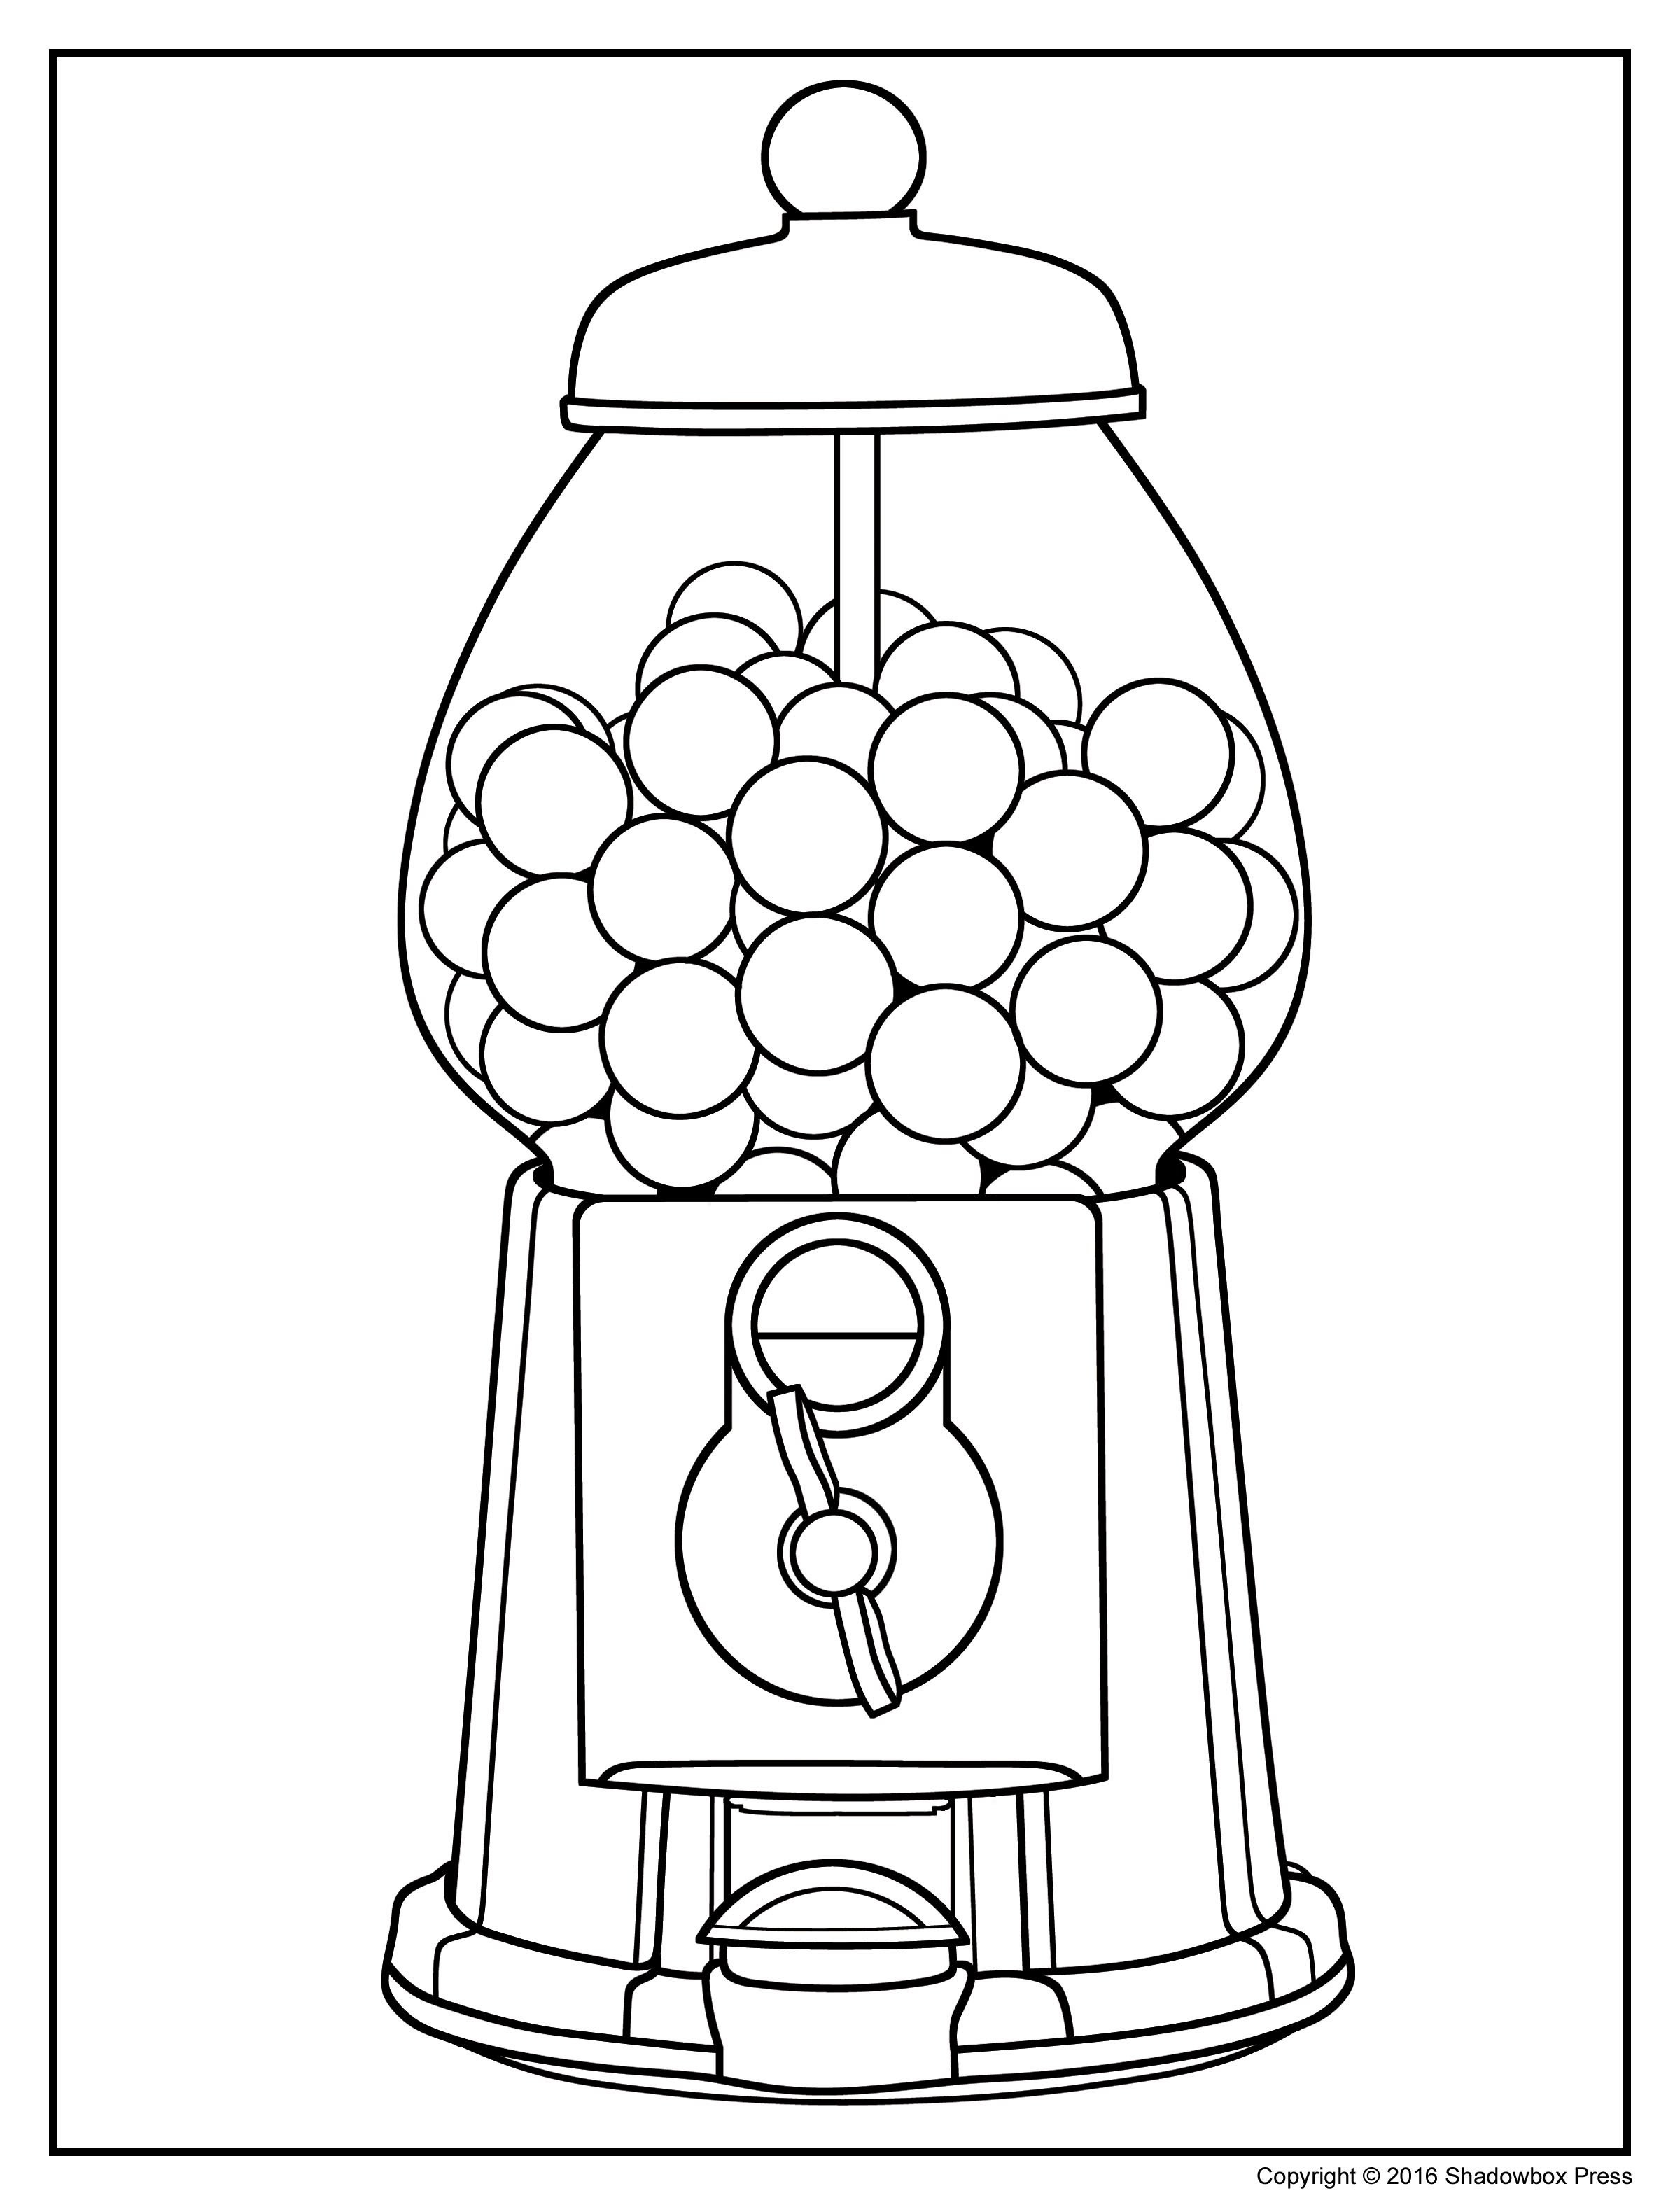 2400x3150 Free Downloadable Coloring Pages For Adults Sizable Seniors